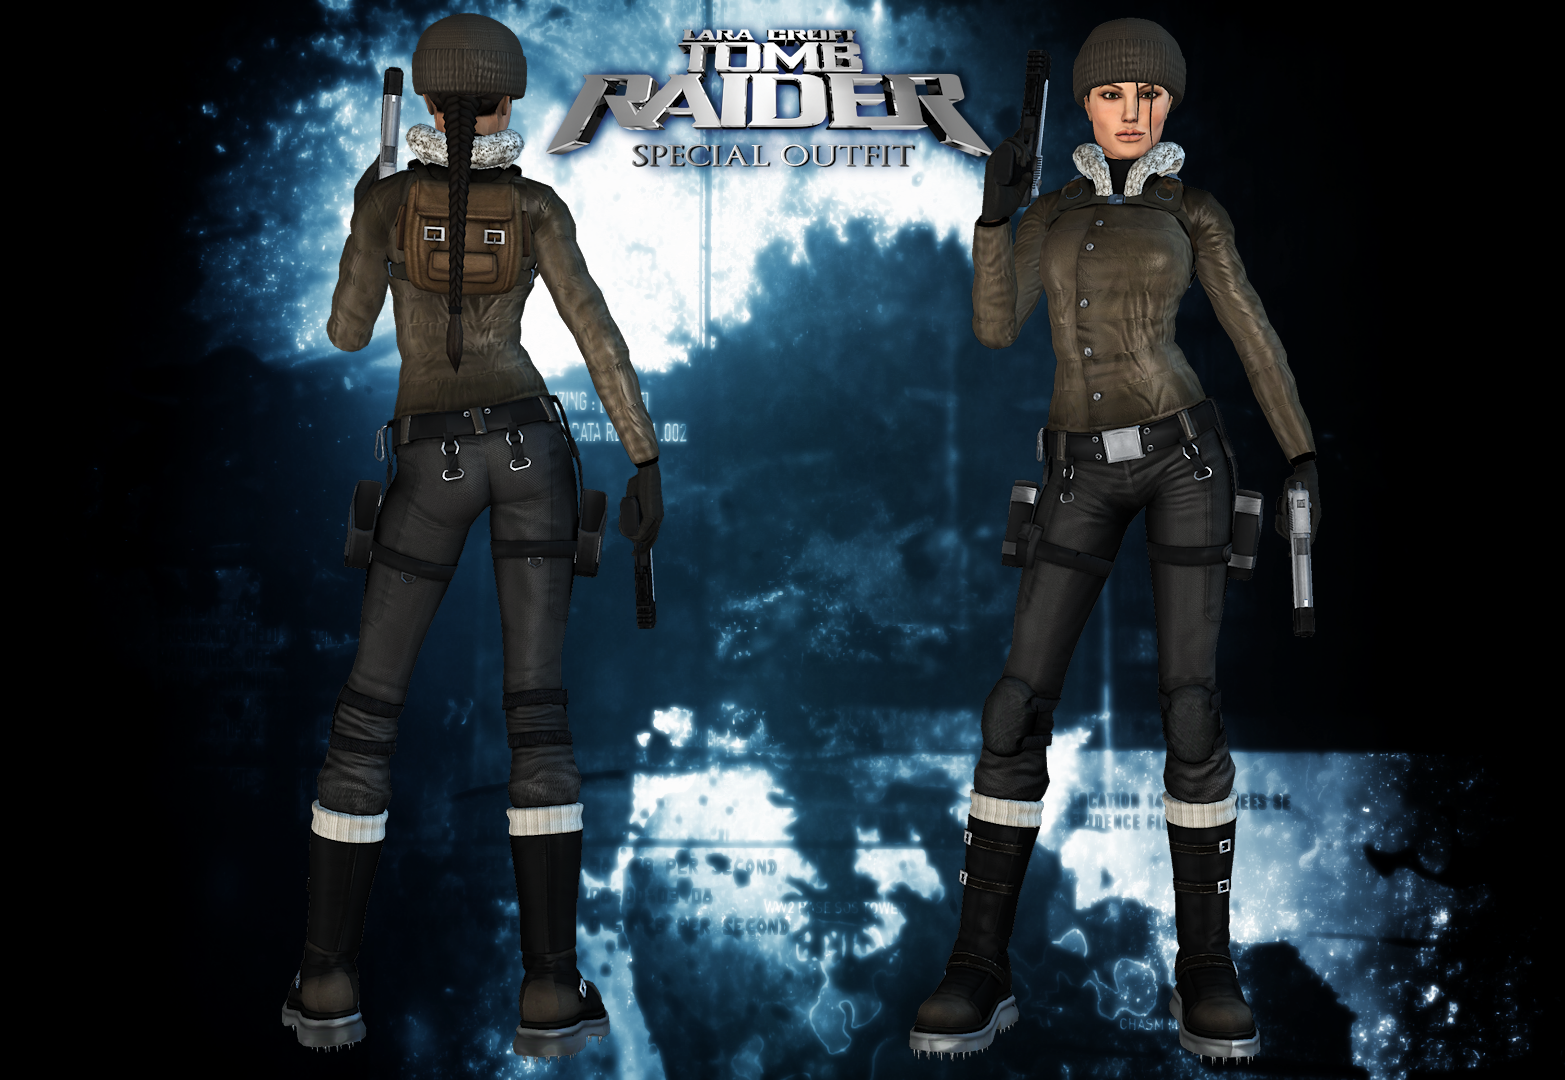 Tomb raider 2023 outfits adult galleries